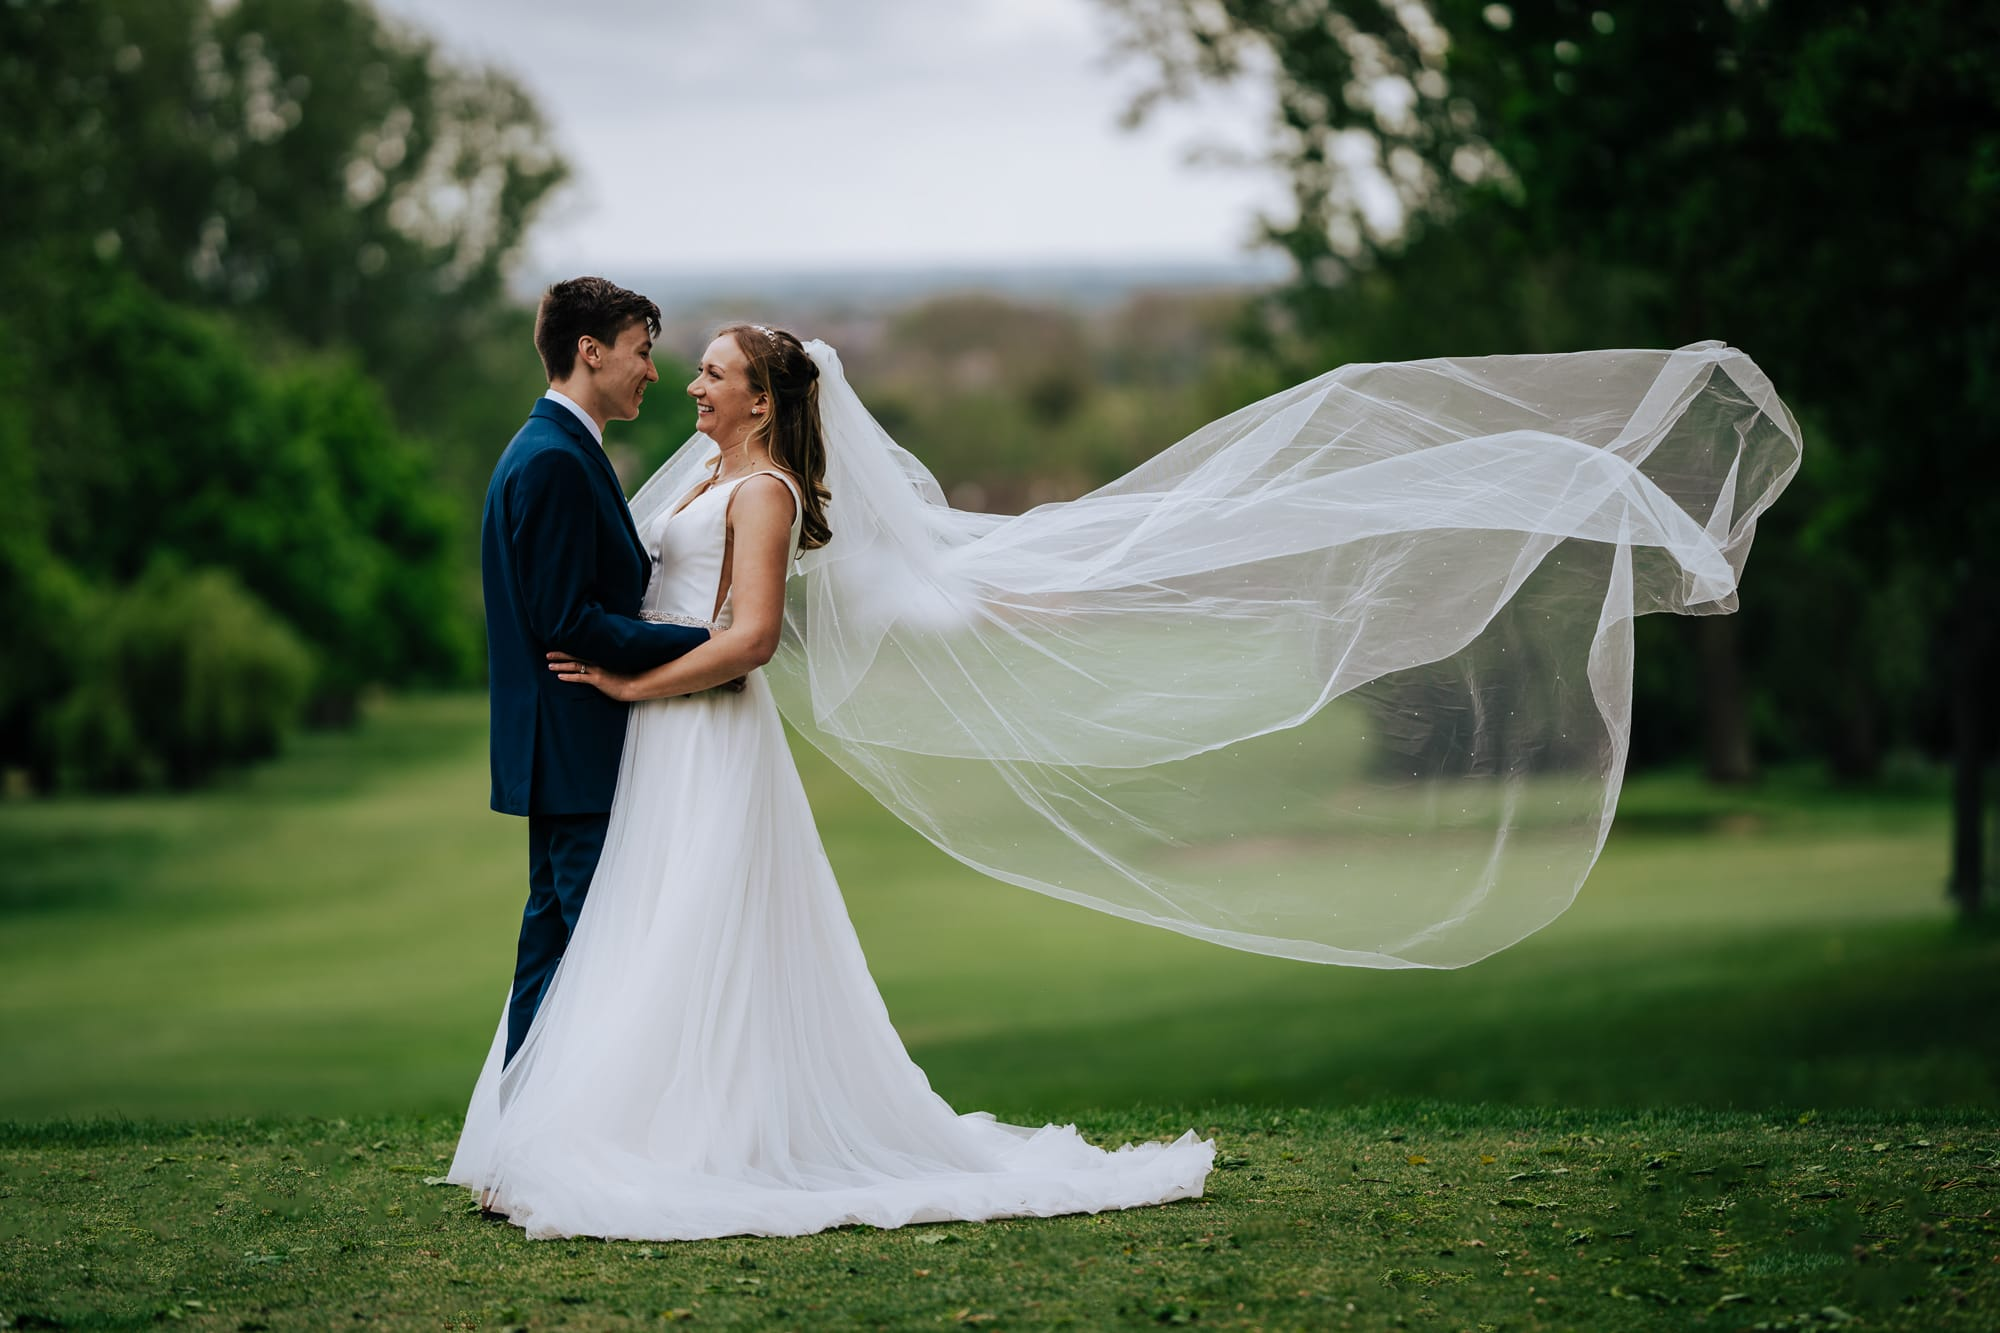 Bride and Groom Portrait at Coombe Wood Golf Course wedding